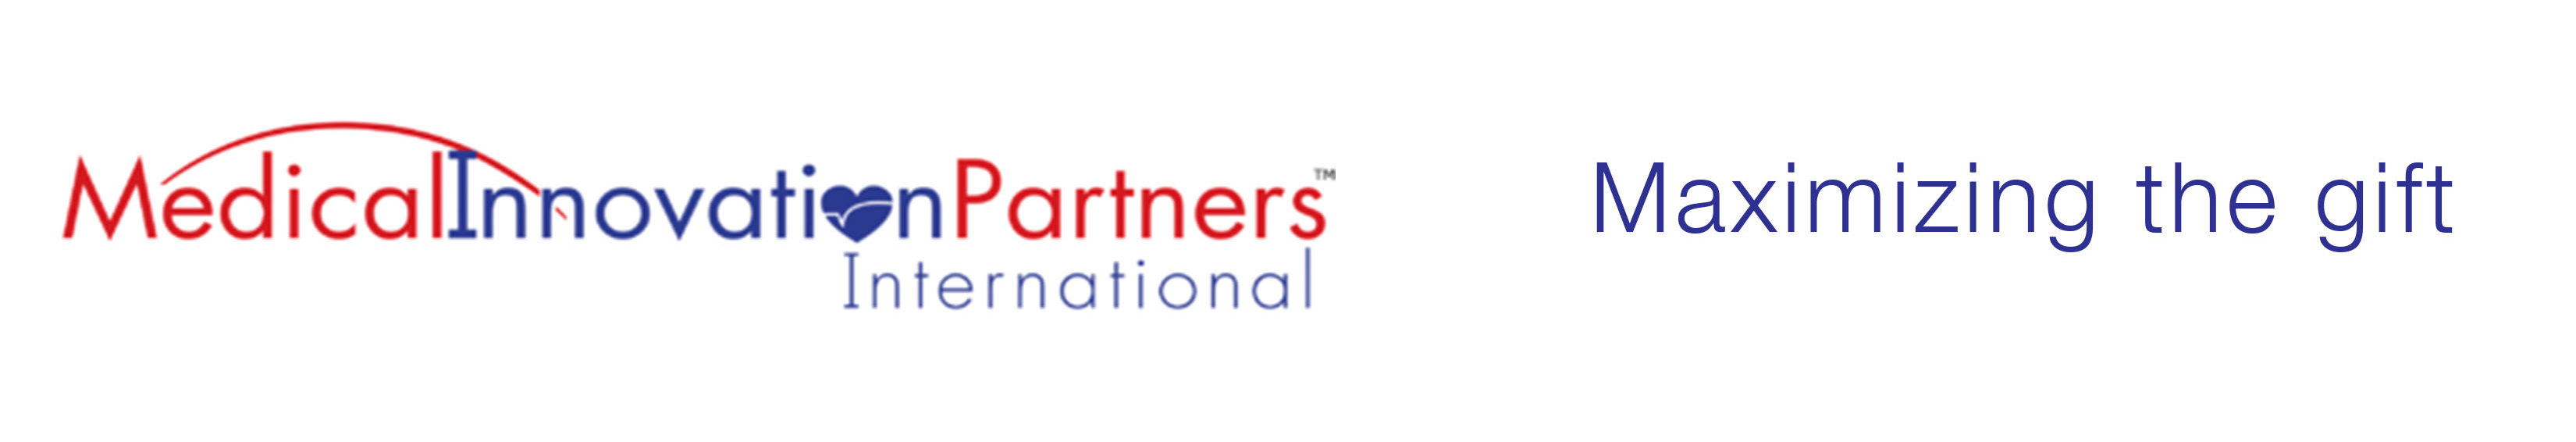 Medical Innovation Partners International